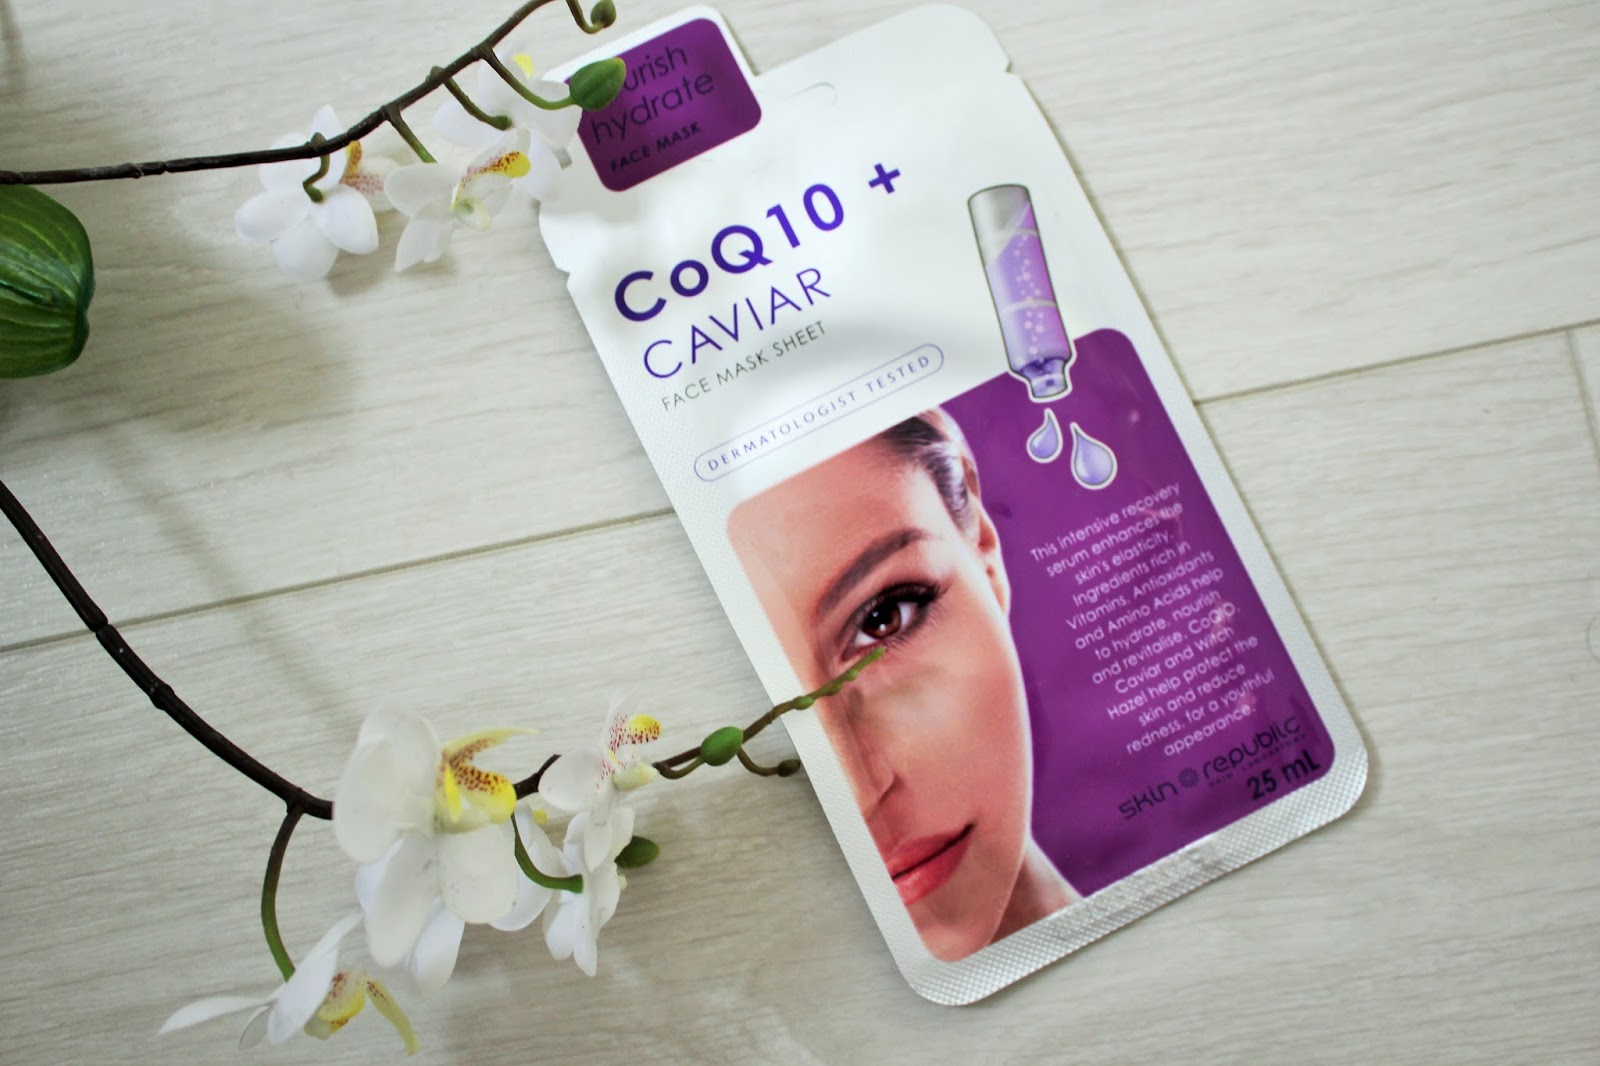 Skin Republic CoQ10 + Caviar Sheet Mask Review